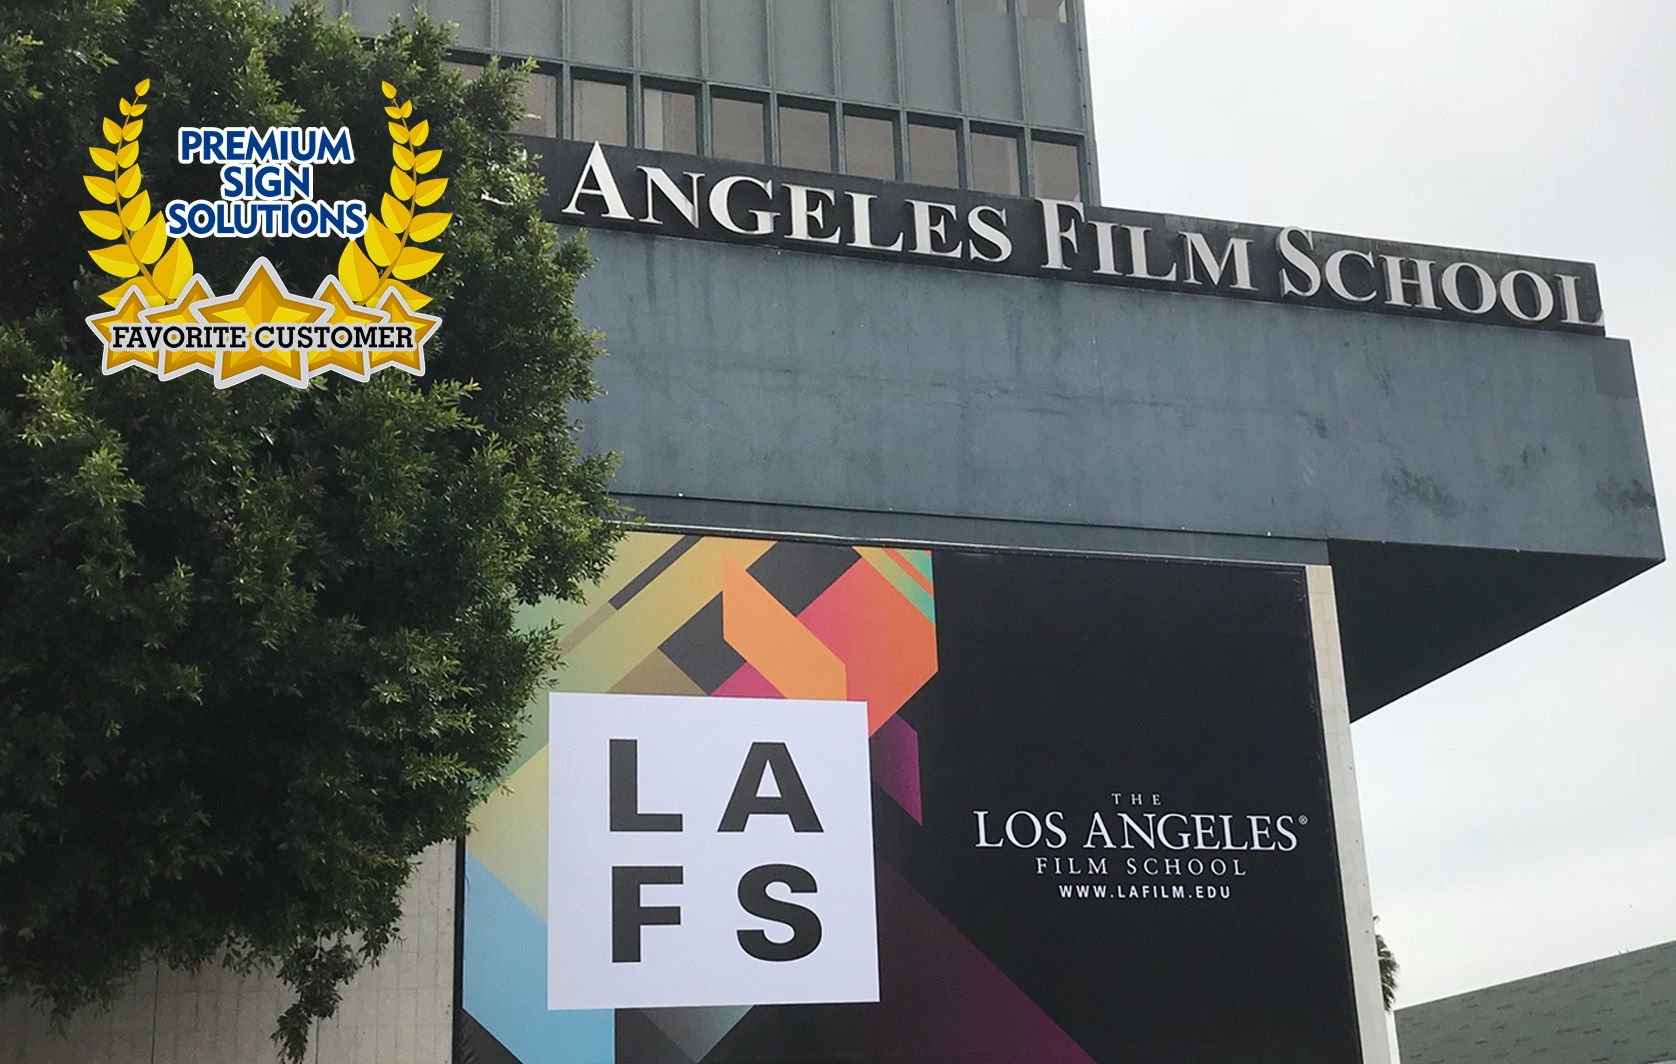 For one of our favorite customers, Los Angeles Film School, classes are continuing online via Zoom and Learning Management System (LMS) for the May term.